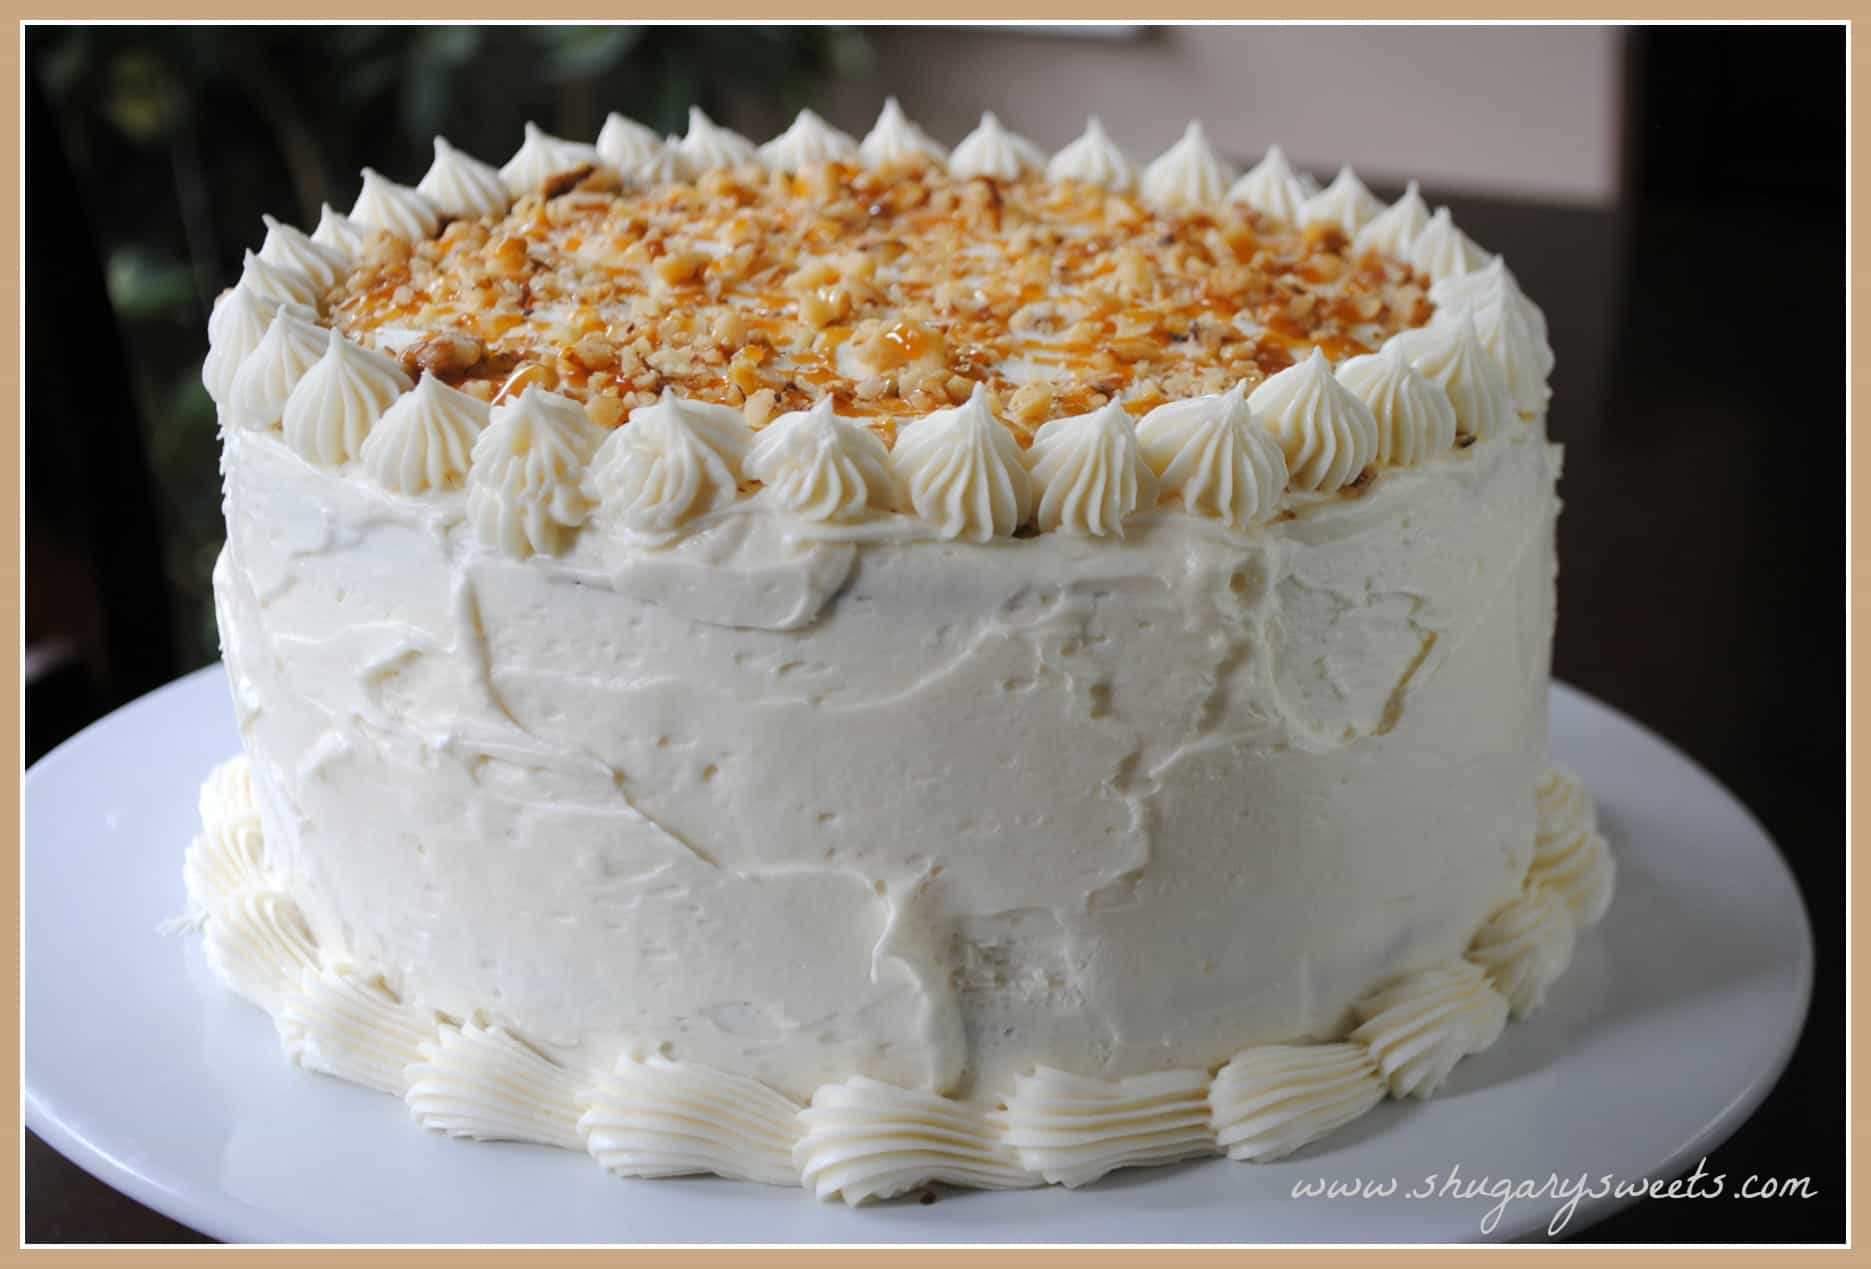 Can You Freeze Cake With Cream Cheese Frosting